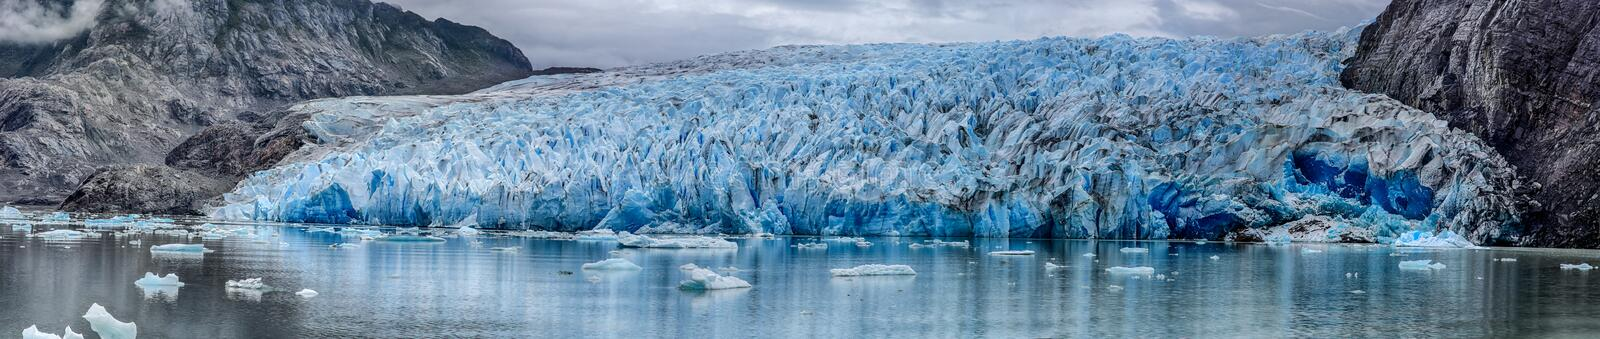 Grey Glacier at Torres del Paine N.P. Patagonia, Chile stock photo